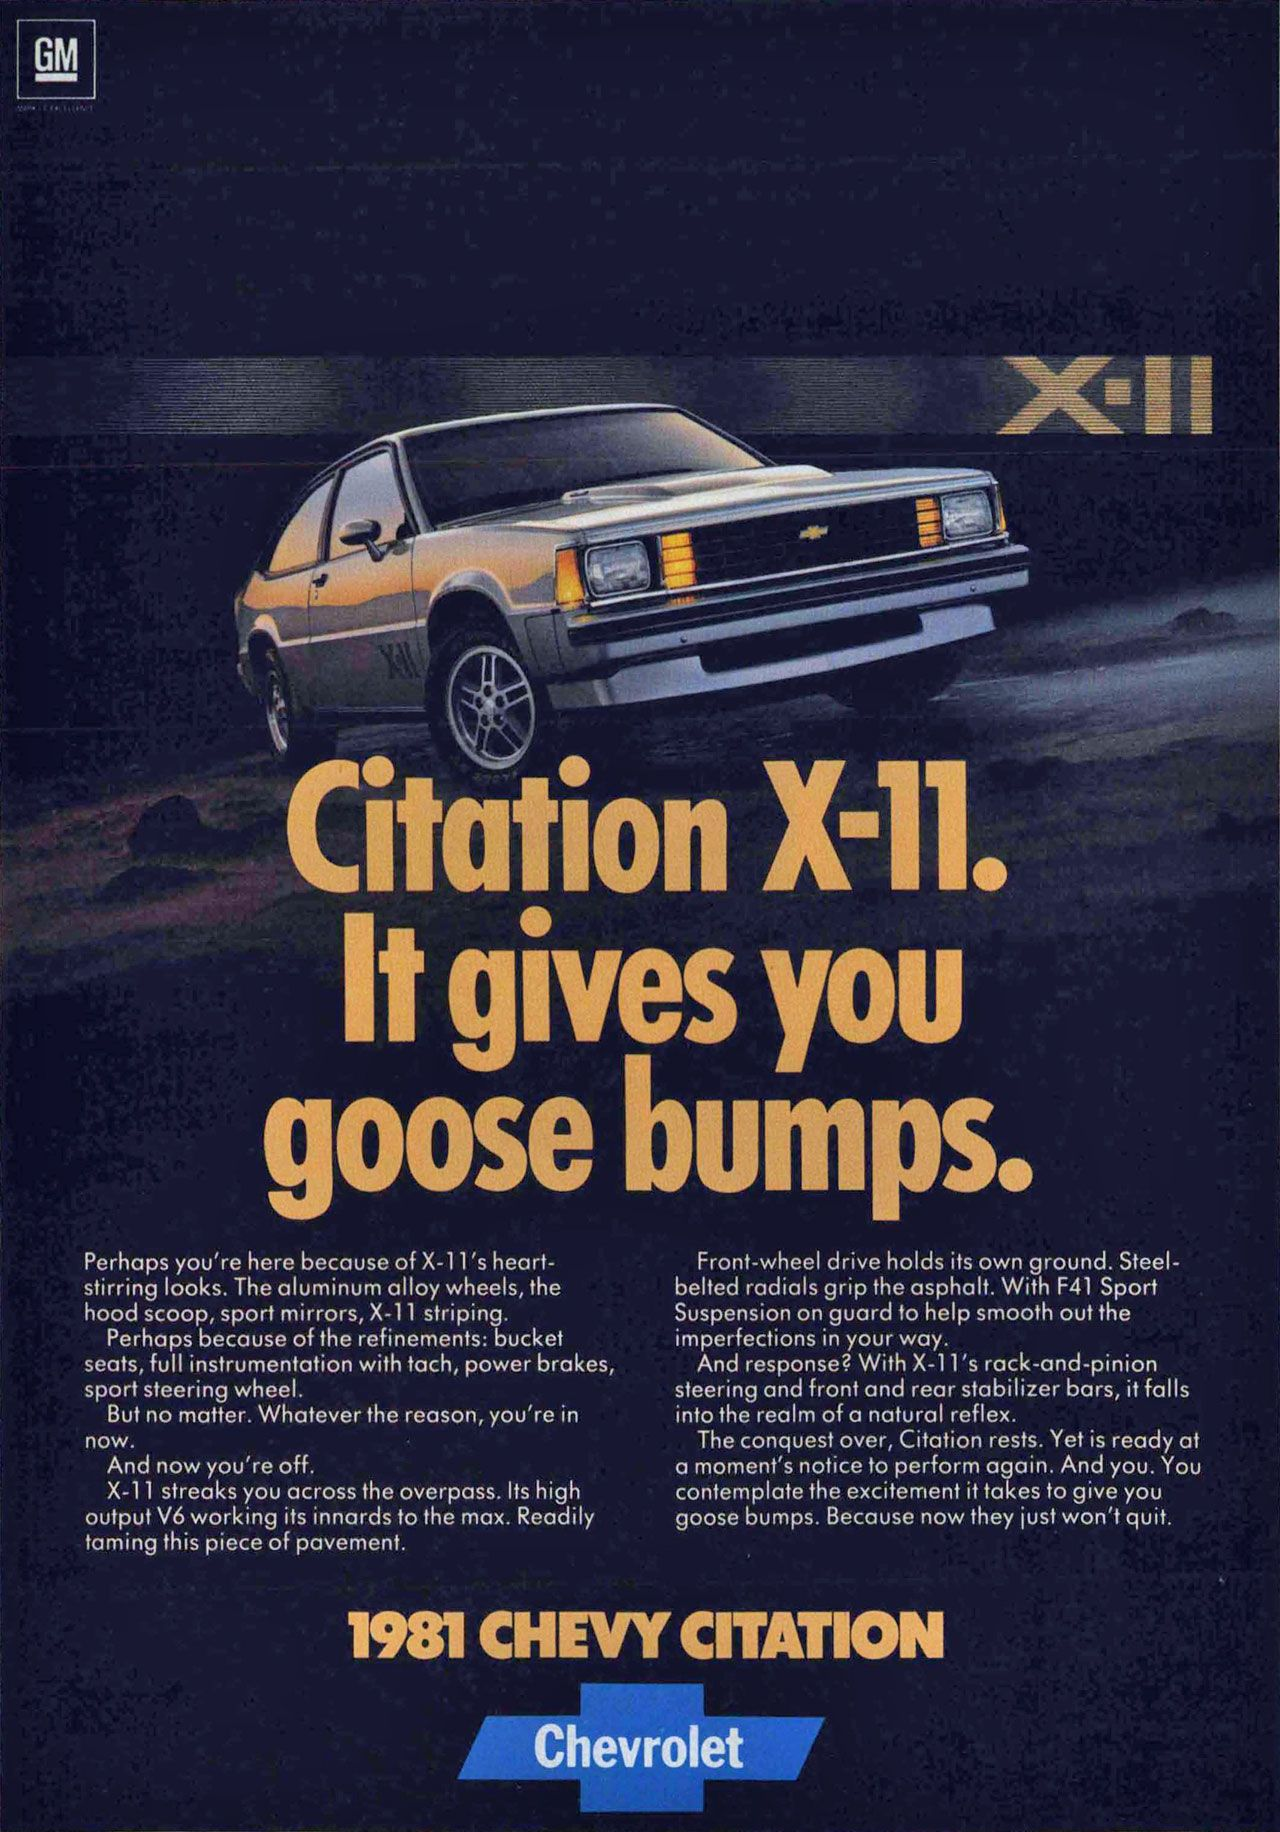 The 1981 Chevrolet Citation X-11. It gives you goose bumps. Perhaps you're here because of X-1 1's heart-stirring looks. The aluminum alloy wheels, the hood scoop, sport mirrors, X-11 striping. Perhaps because of the refinements: bucket seats, full instrumentation with tach, power brakes, sport steering wheel. But no matter. Whatever the reason, you're in now. And now you're off. X-1 1 streaks you across the overpass. Its high output V6 working its innards to the max. Readily taming this piece of pavement. Front-wheel drive holds its own ground. Steel-belted radials grip the asphalt. With F41 Sport Suspension on guard to help smooth out the imperfections in your way. And response? With X-1 1's rack-and-pinion steering and front and rear stabilizer bars, it falls into the realm of a natural reflex. The conquest over, Citation rests. Yet is ready at a moment's notice to perform again. And you. You contemplate the excitement it takes to give you goose bumps. Because now they just won't quit.